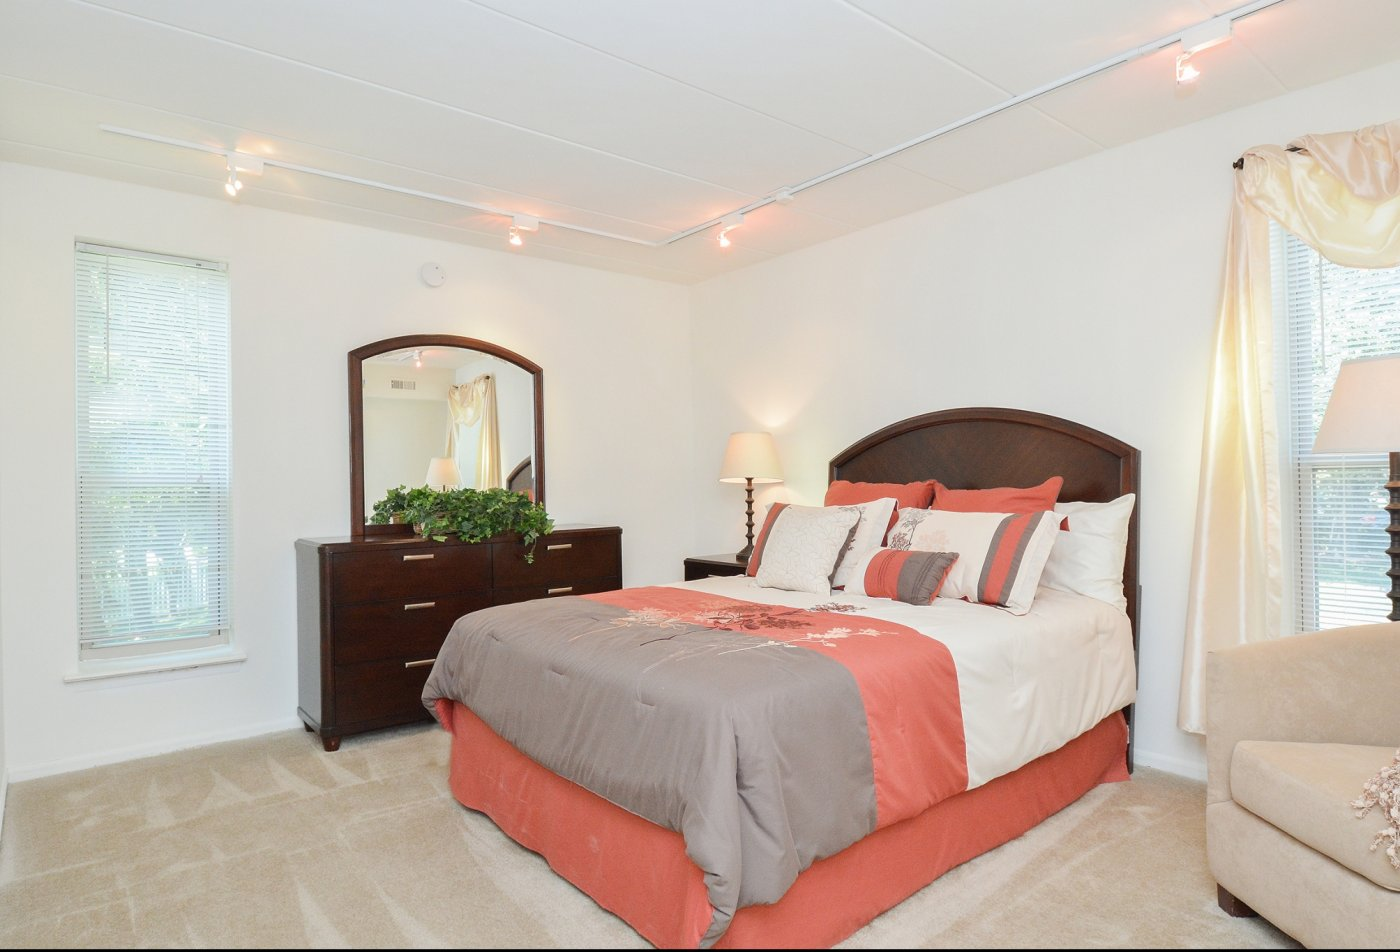 Spacious Master Bedroom | Apartments Homes for rent in Langhorne, PA | Summit Trace Apartments